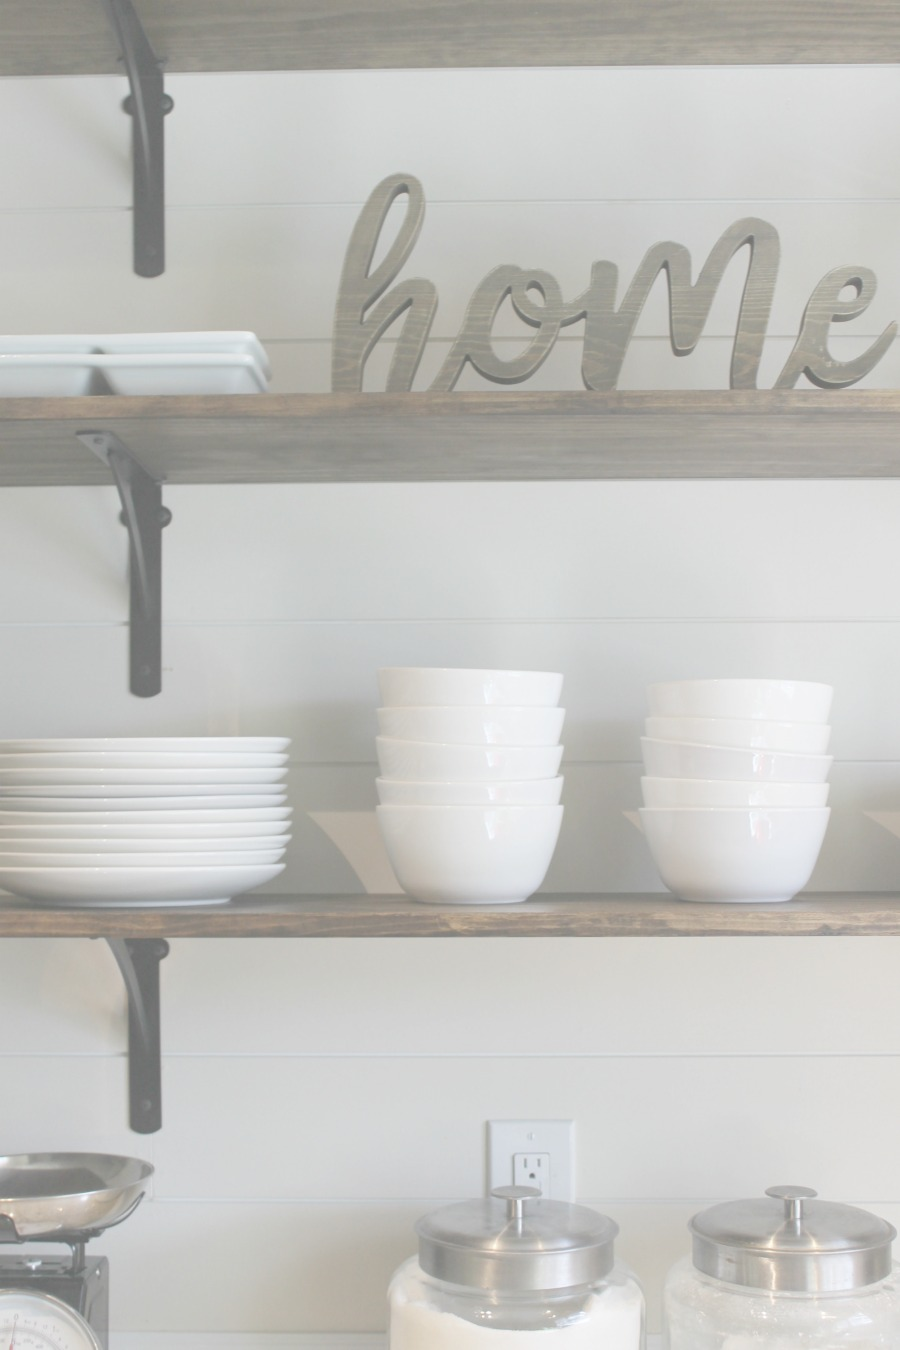 DIY kitchen shelves - farmhouse style, white ceramic bowls and plates